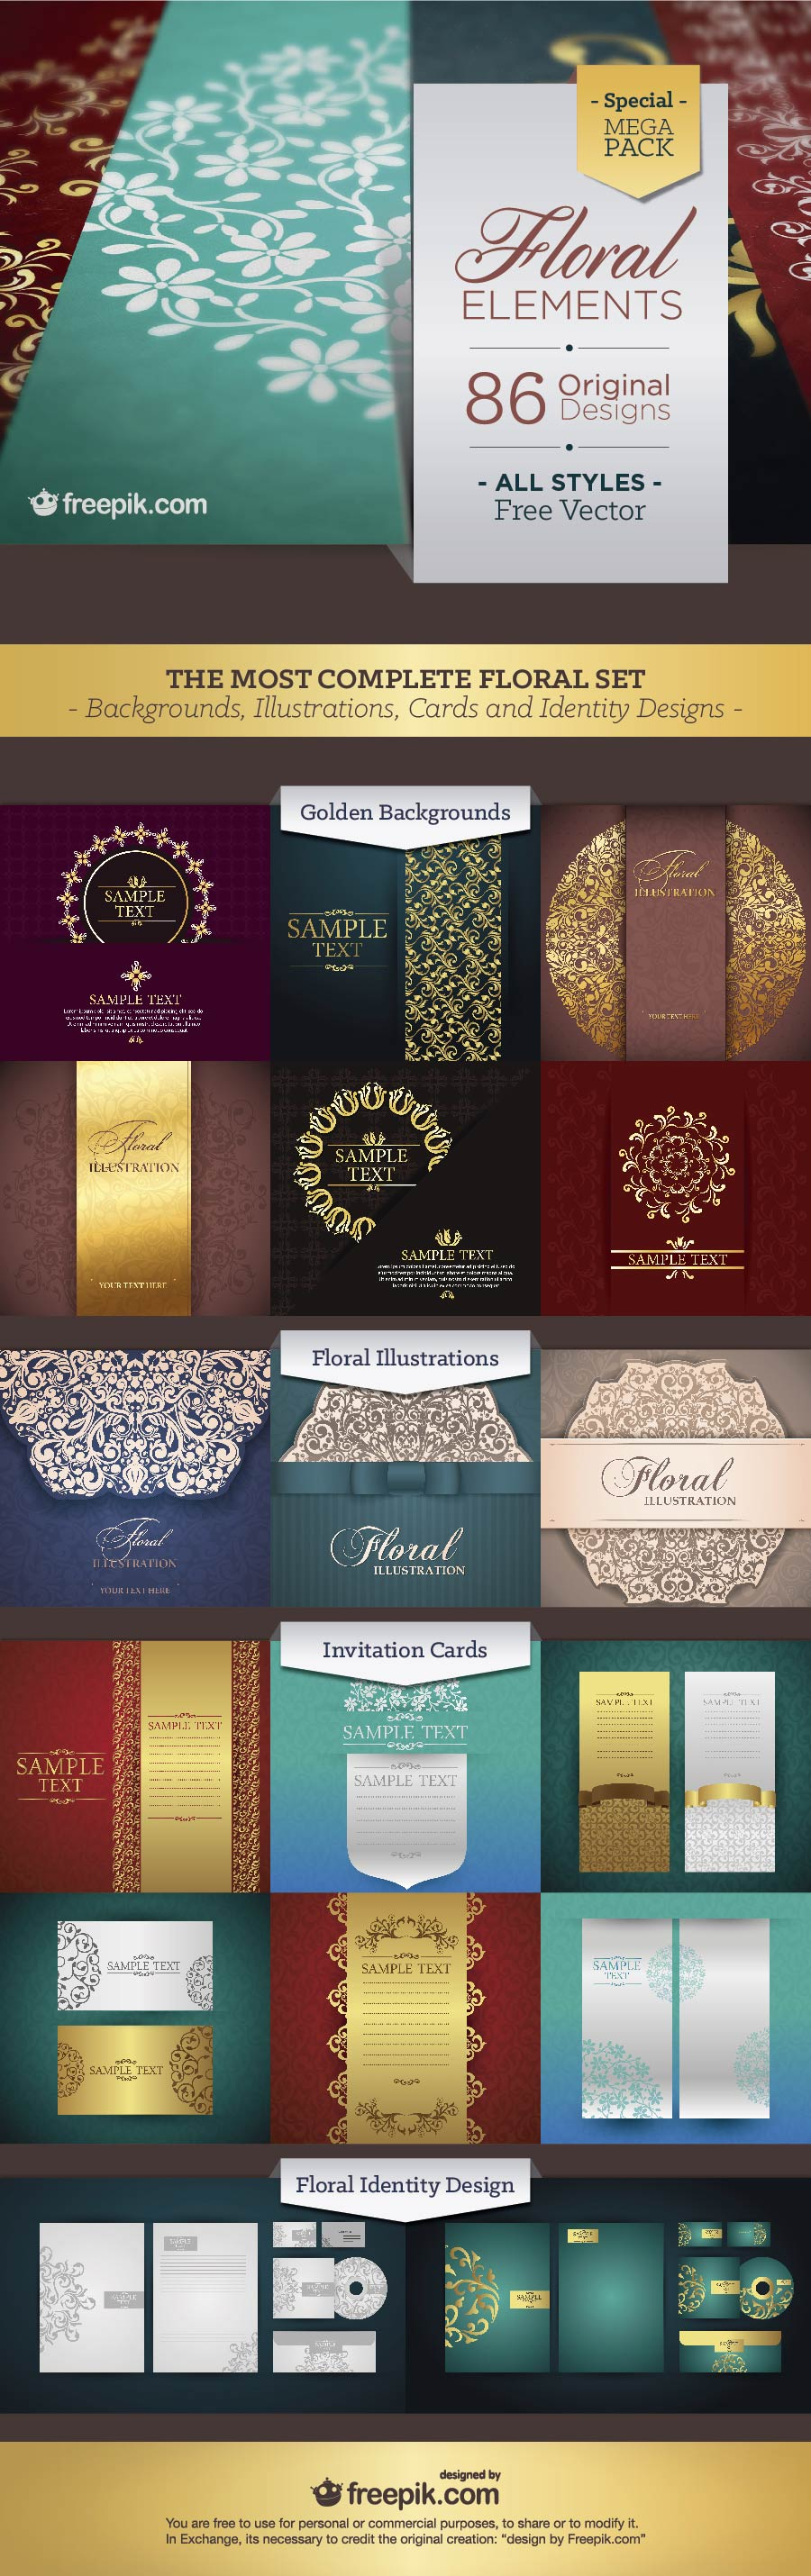 Free Floral Elements Mega Pack Invitation Card Sample Free Floral